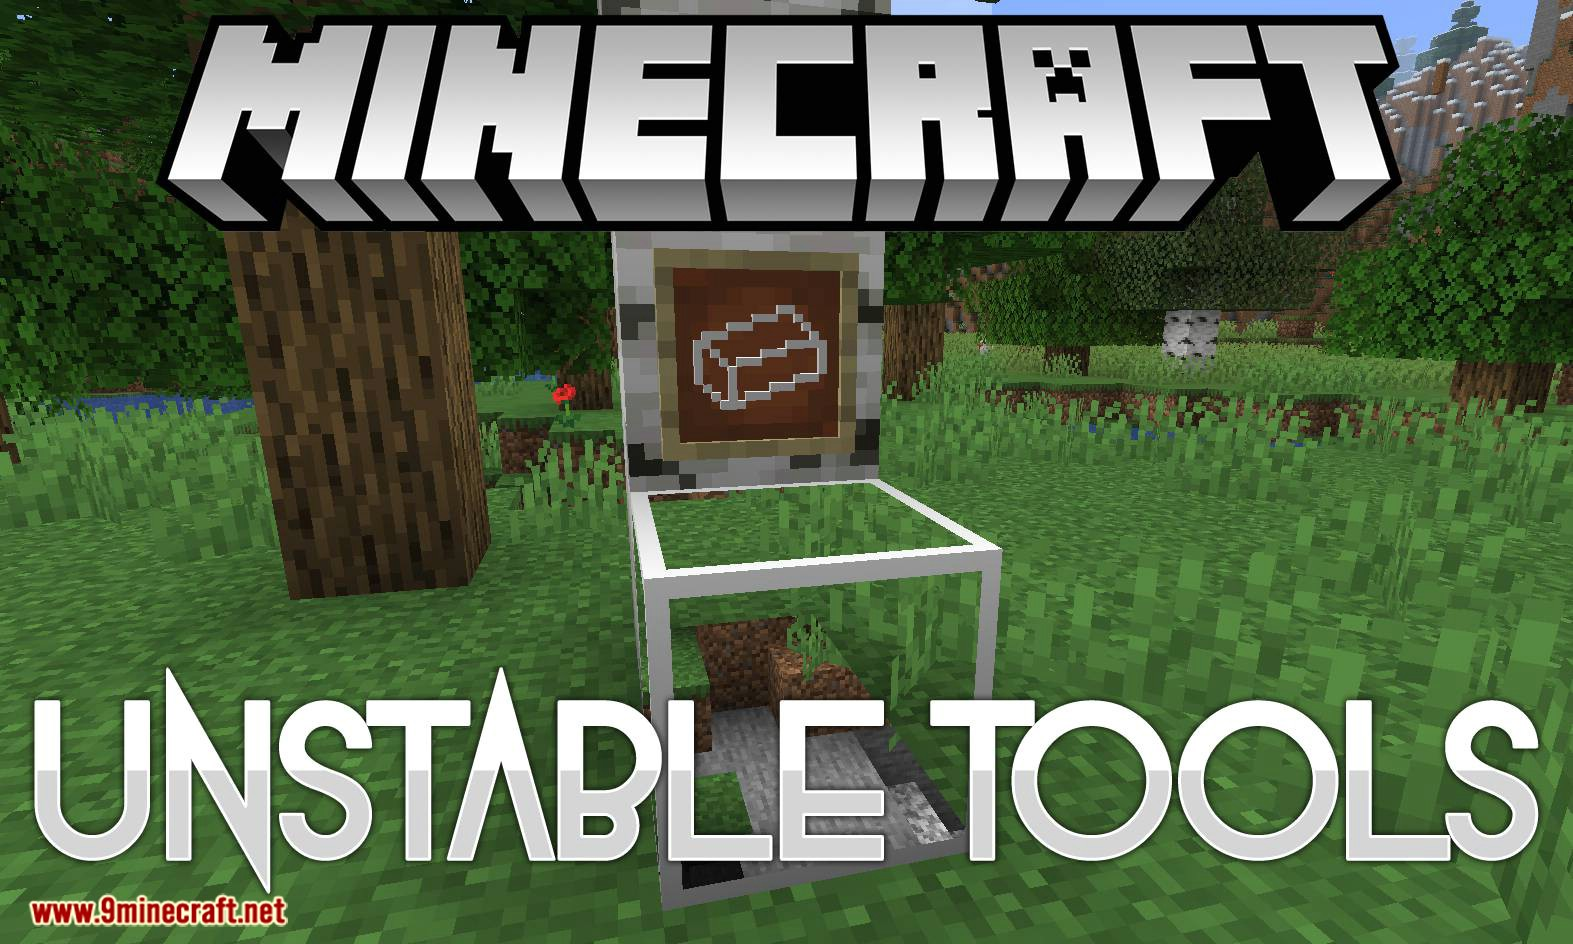 Unstable Tools mod for minecraft logo